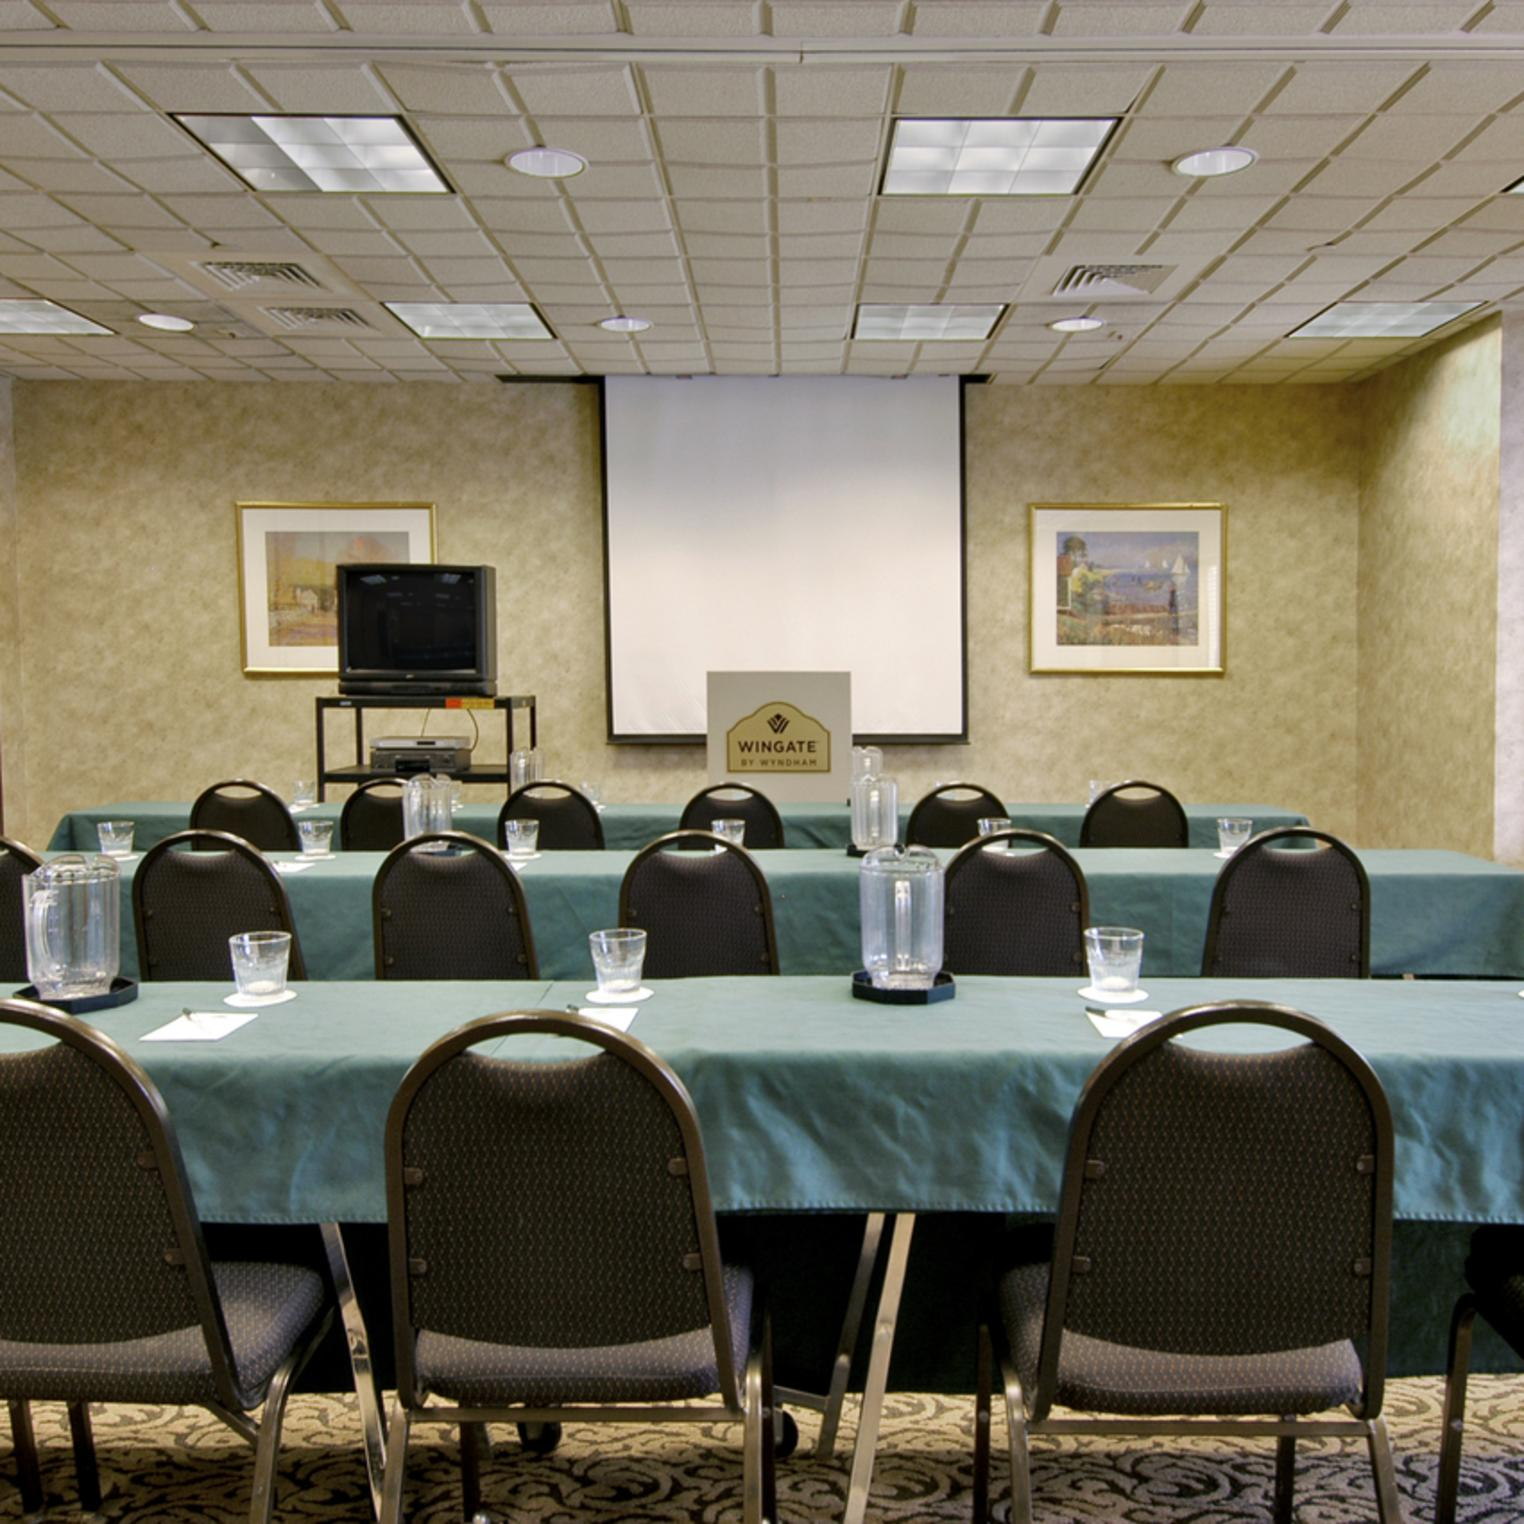 Meeting and event space provided